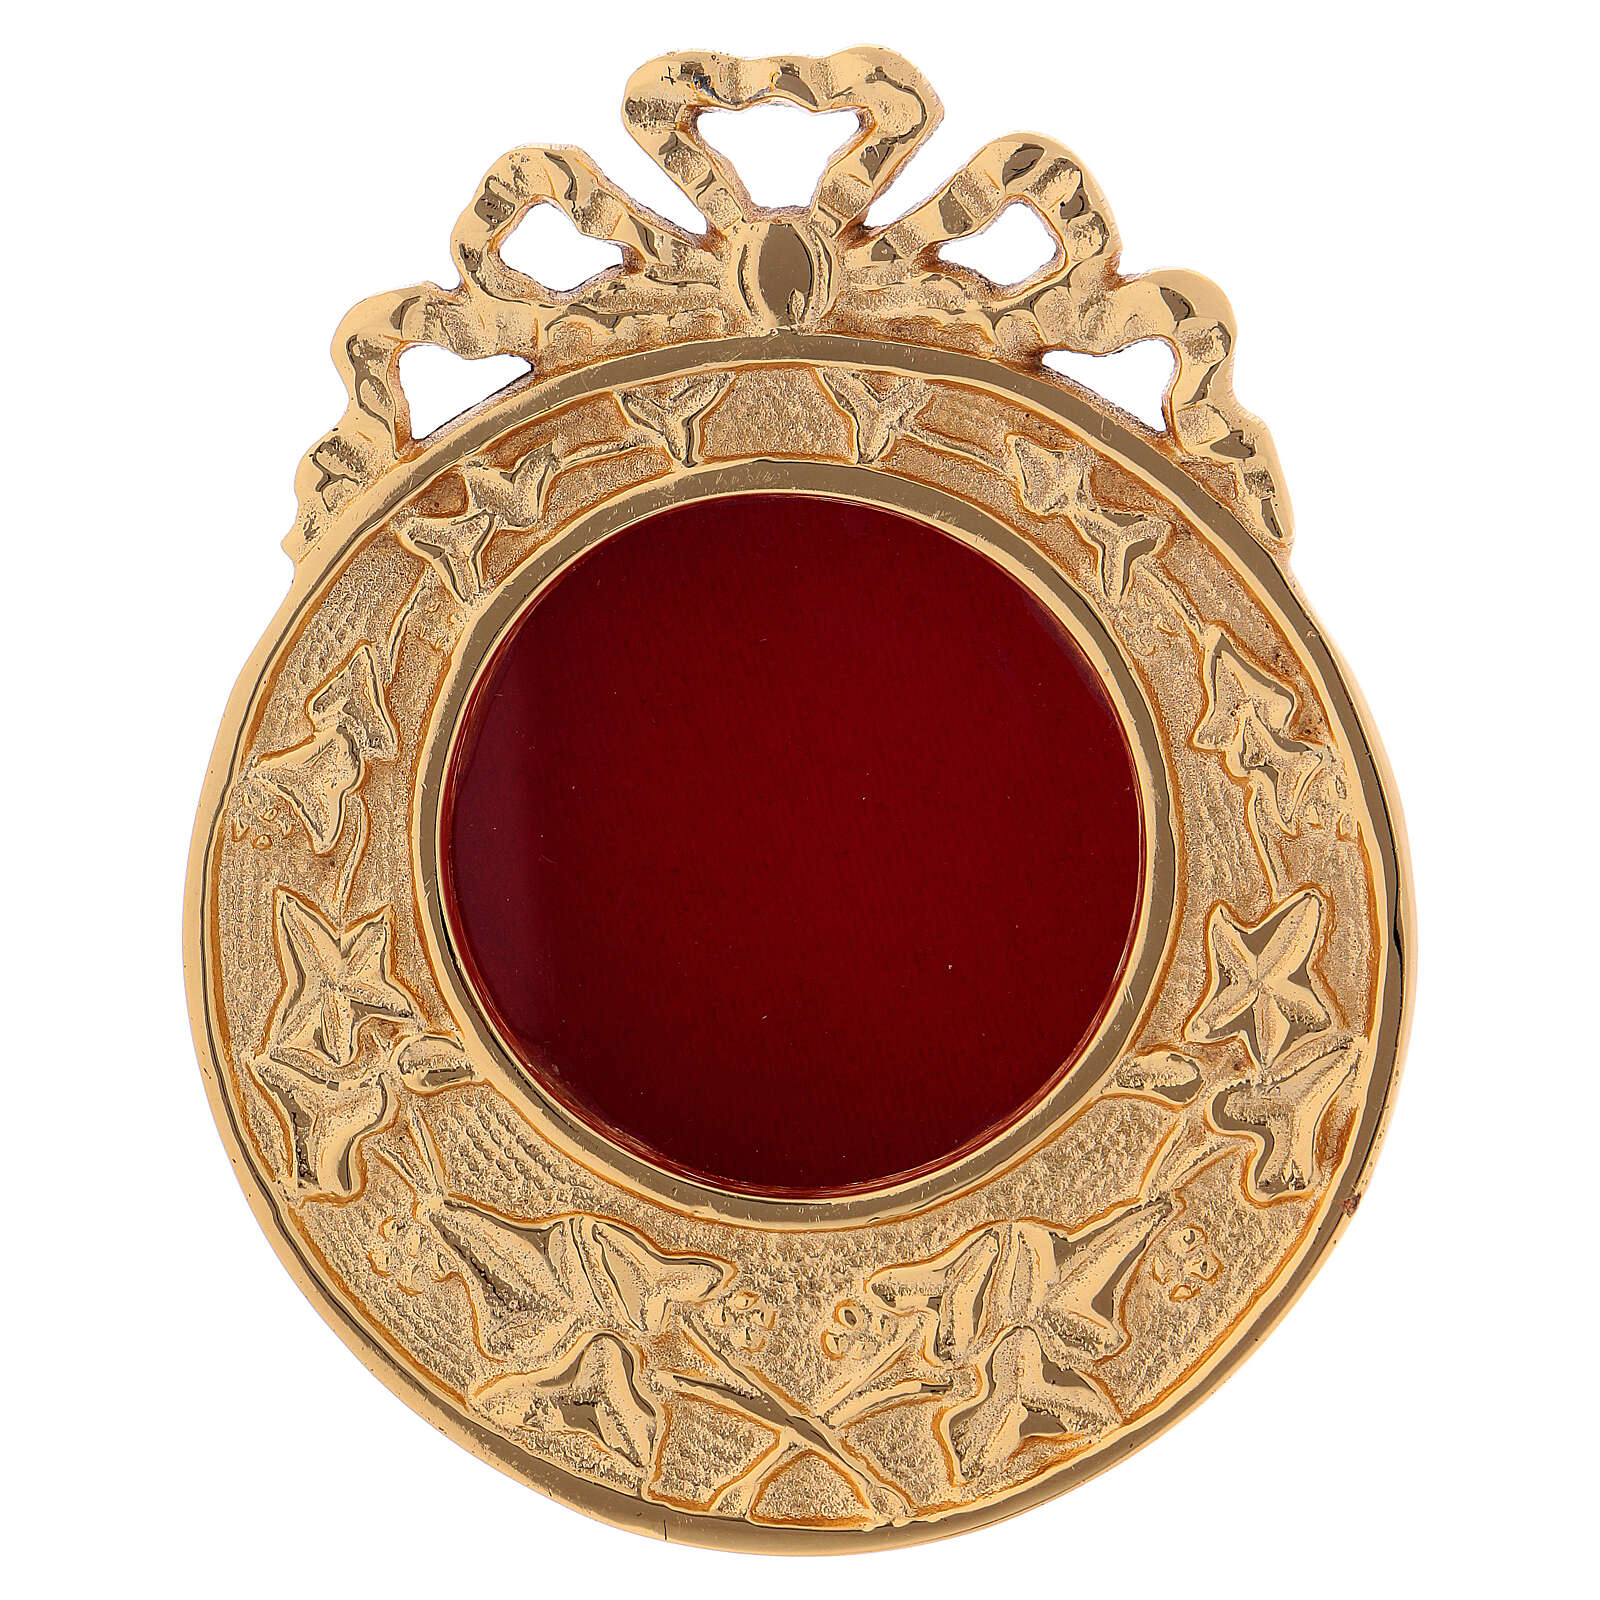 Wall-mounted round reliquary in gold plated brass h 4 1/4 in 4